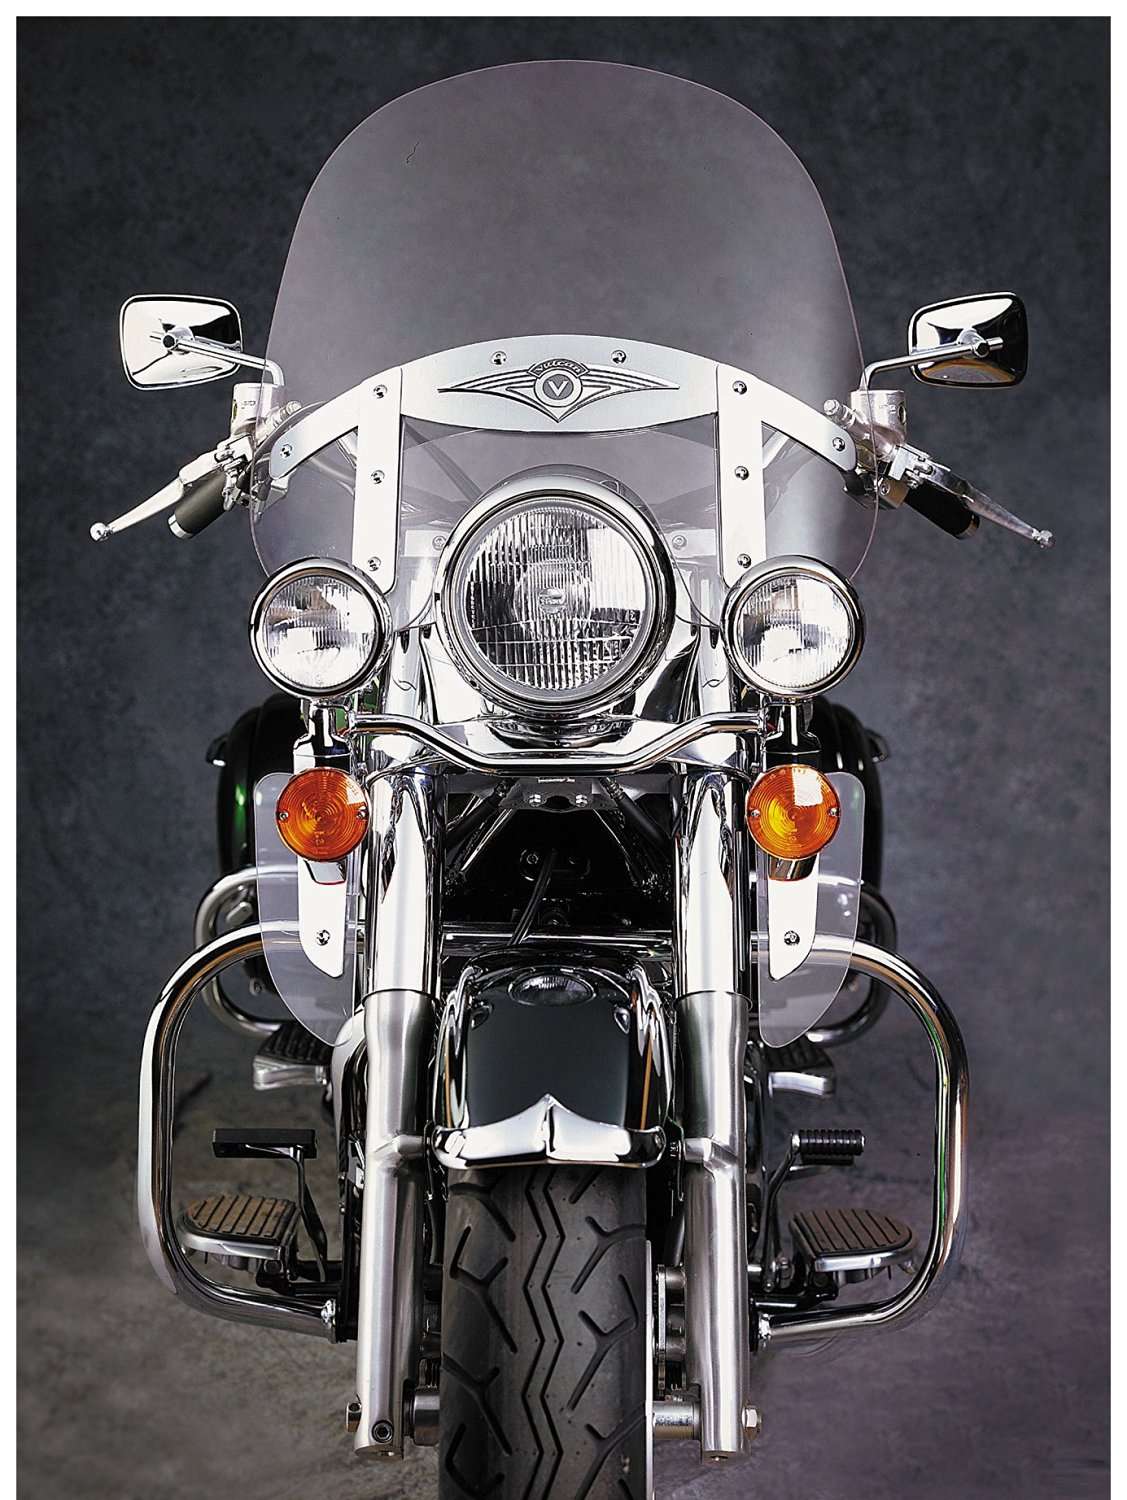 National Cycle Front Chrome Fender Tip for Kawasaki 1996-2008 VN1500D/N/E Vulca - One Size